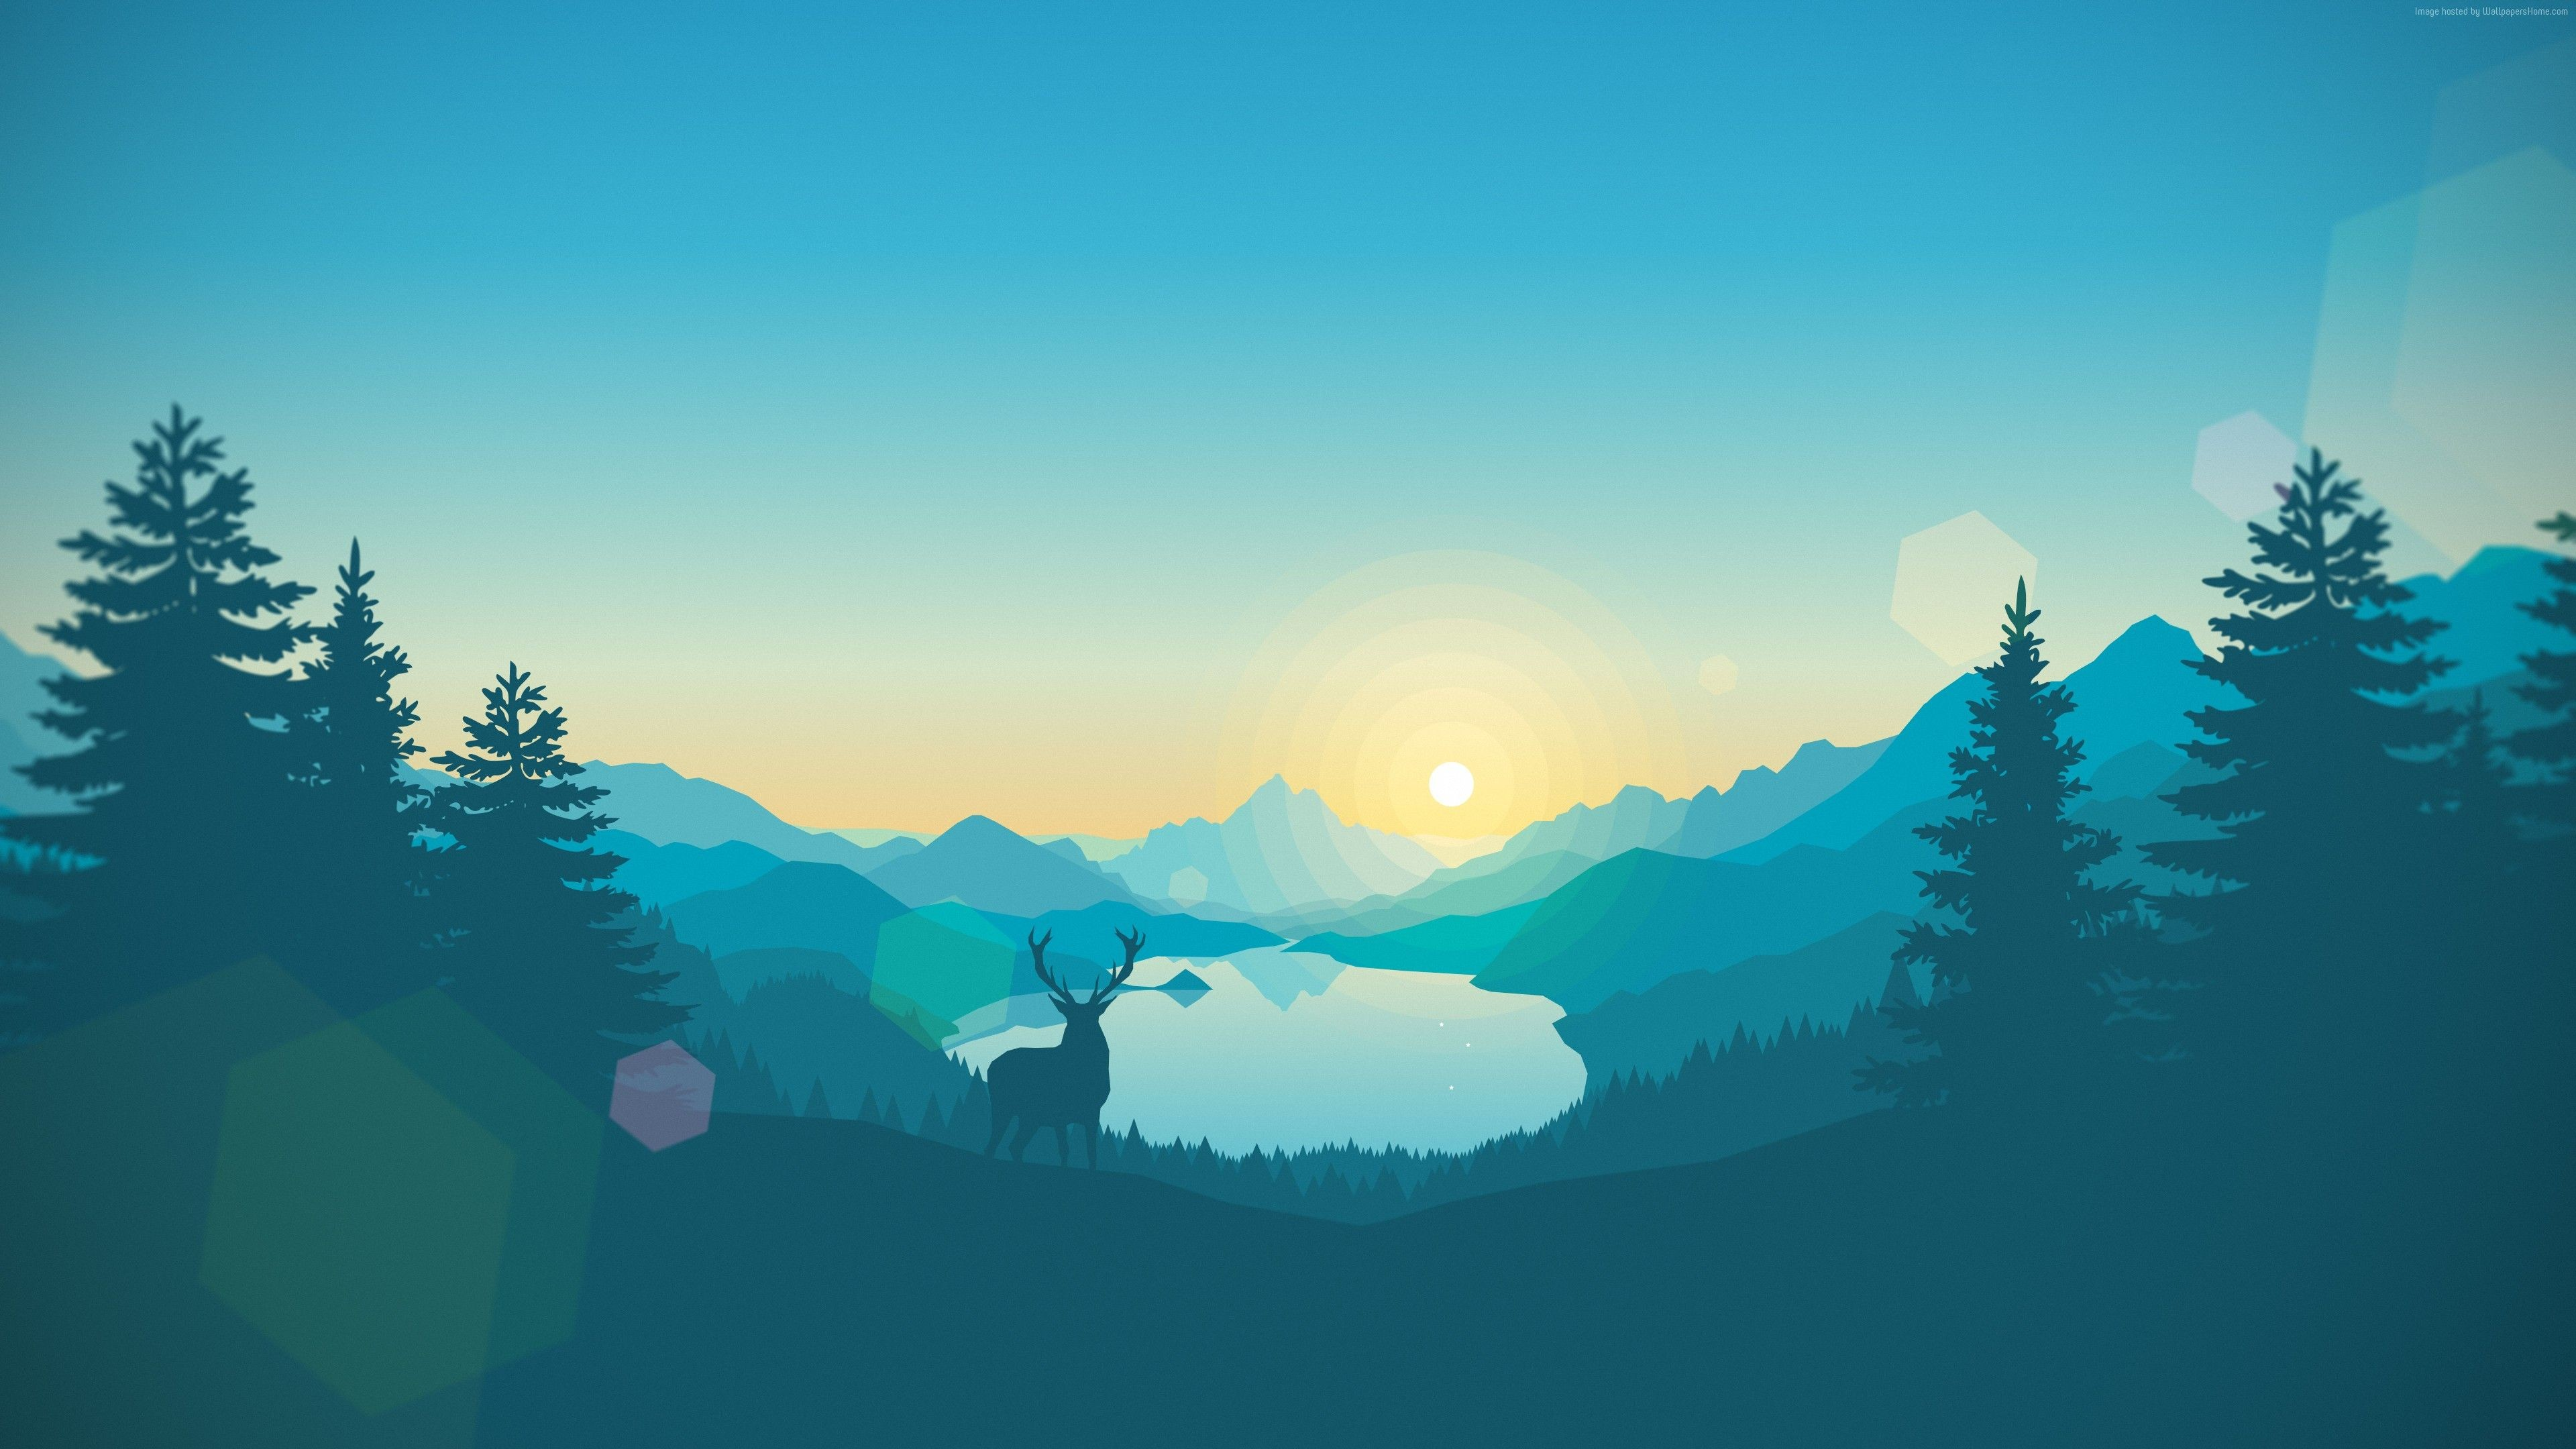 Top Wallpaper Forest Deer - flat-3840x2160-forest-deer-4k-5k-iphone-wallpaper-abstract-11925  Pictures_74415 .jpg